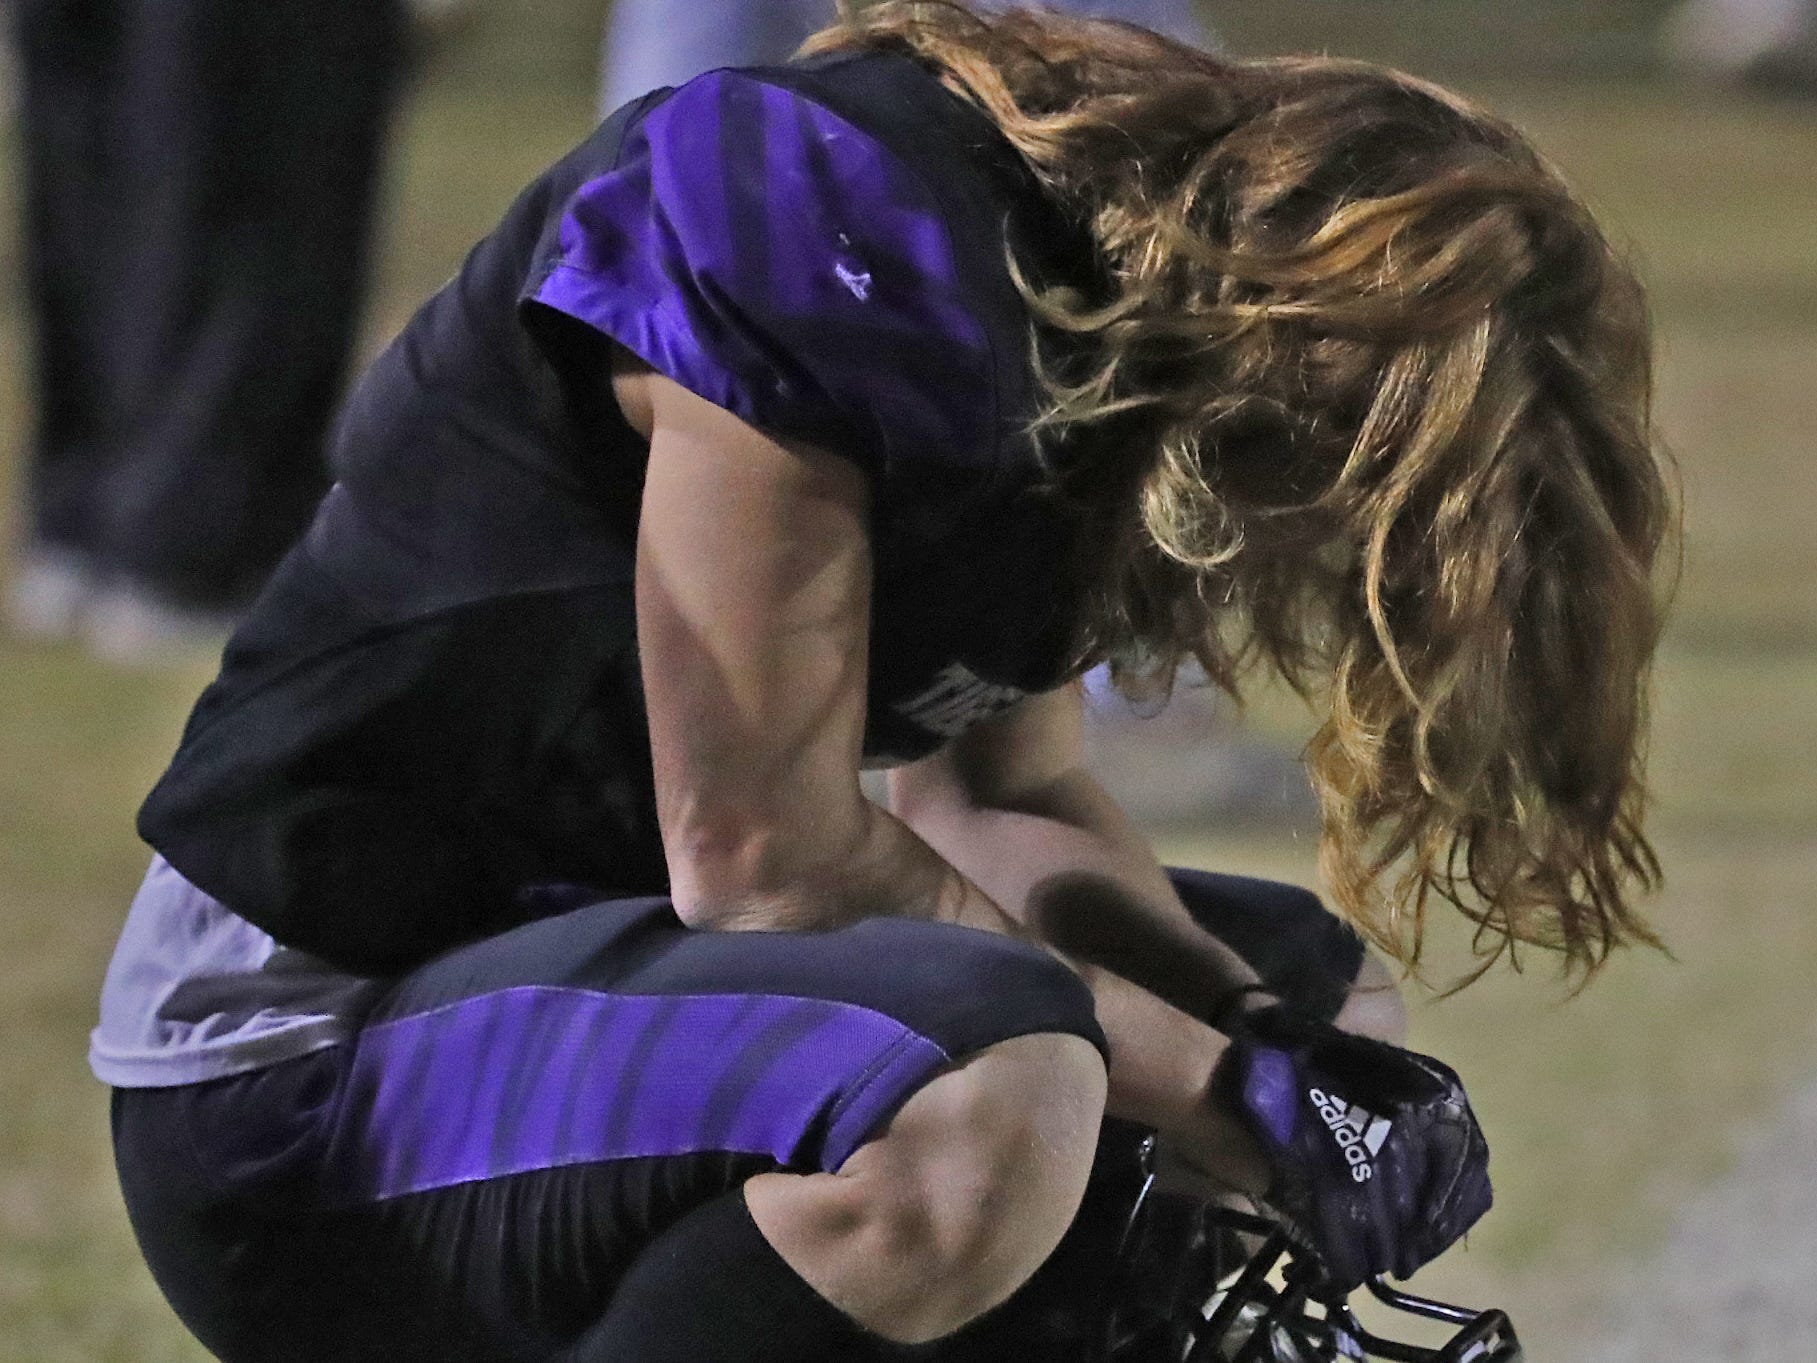 Millennium's Kyle St. Pierre (9) prays before the first round of the AIA State Football Playoffs against Flowing Wells at Millennium High School in Goodyear, Ariz. on Nov. 2, 2018.